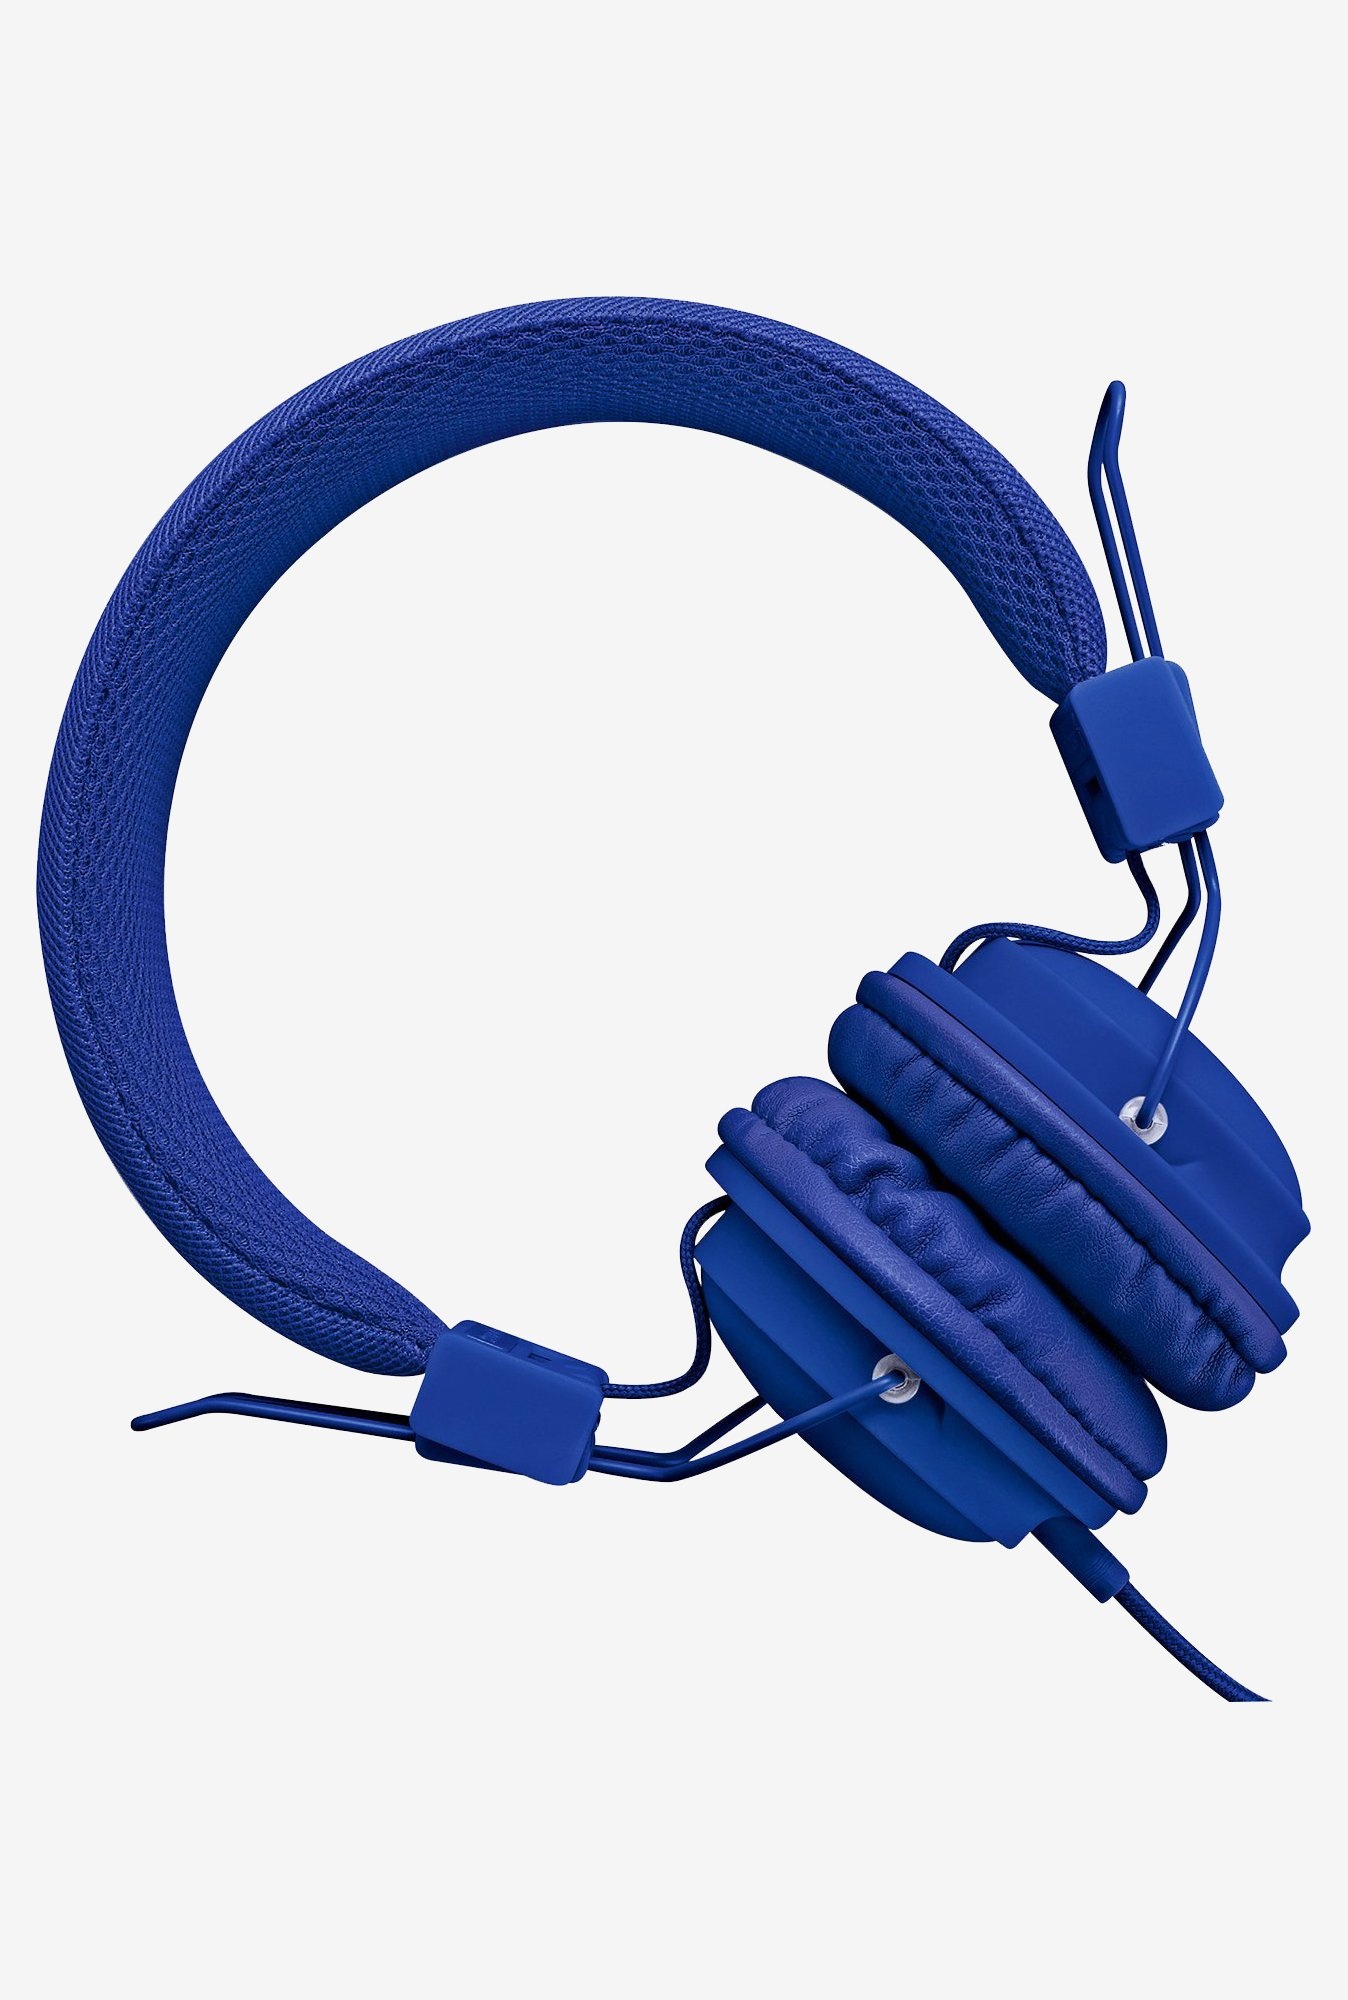 Generic HD850 On-Ear Lightweight Stereo Headphones